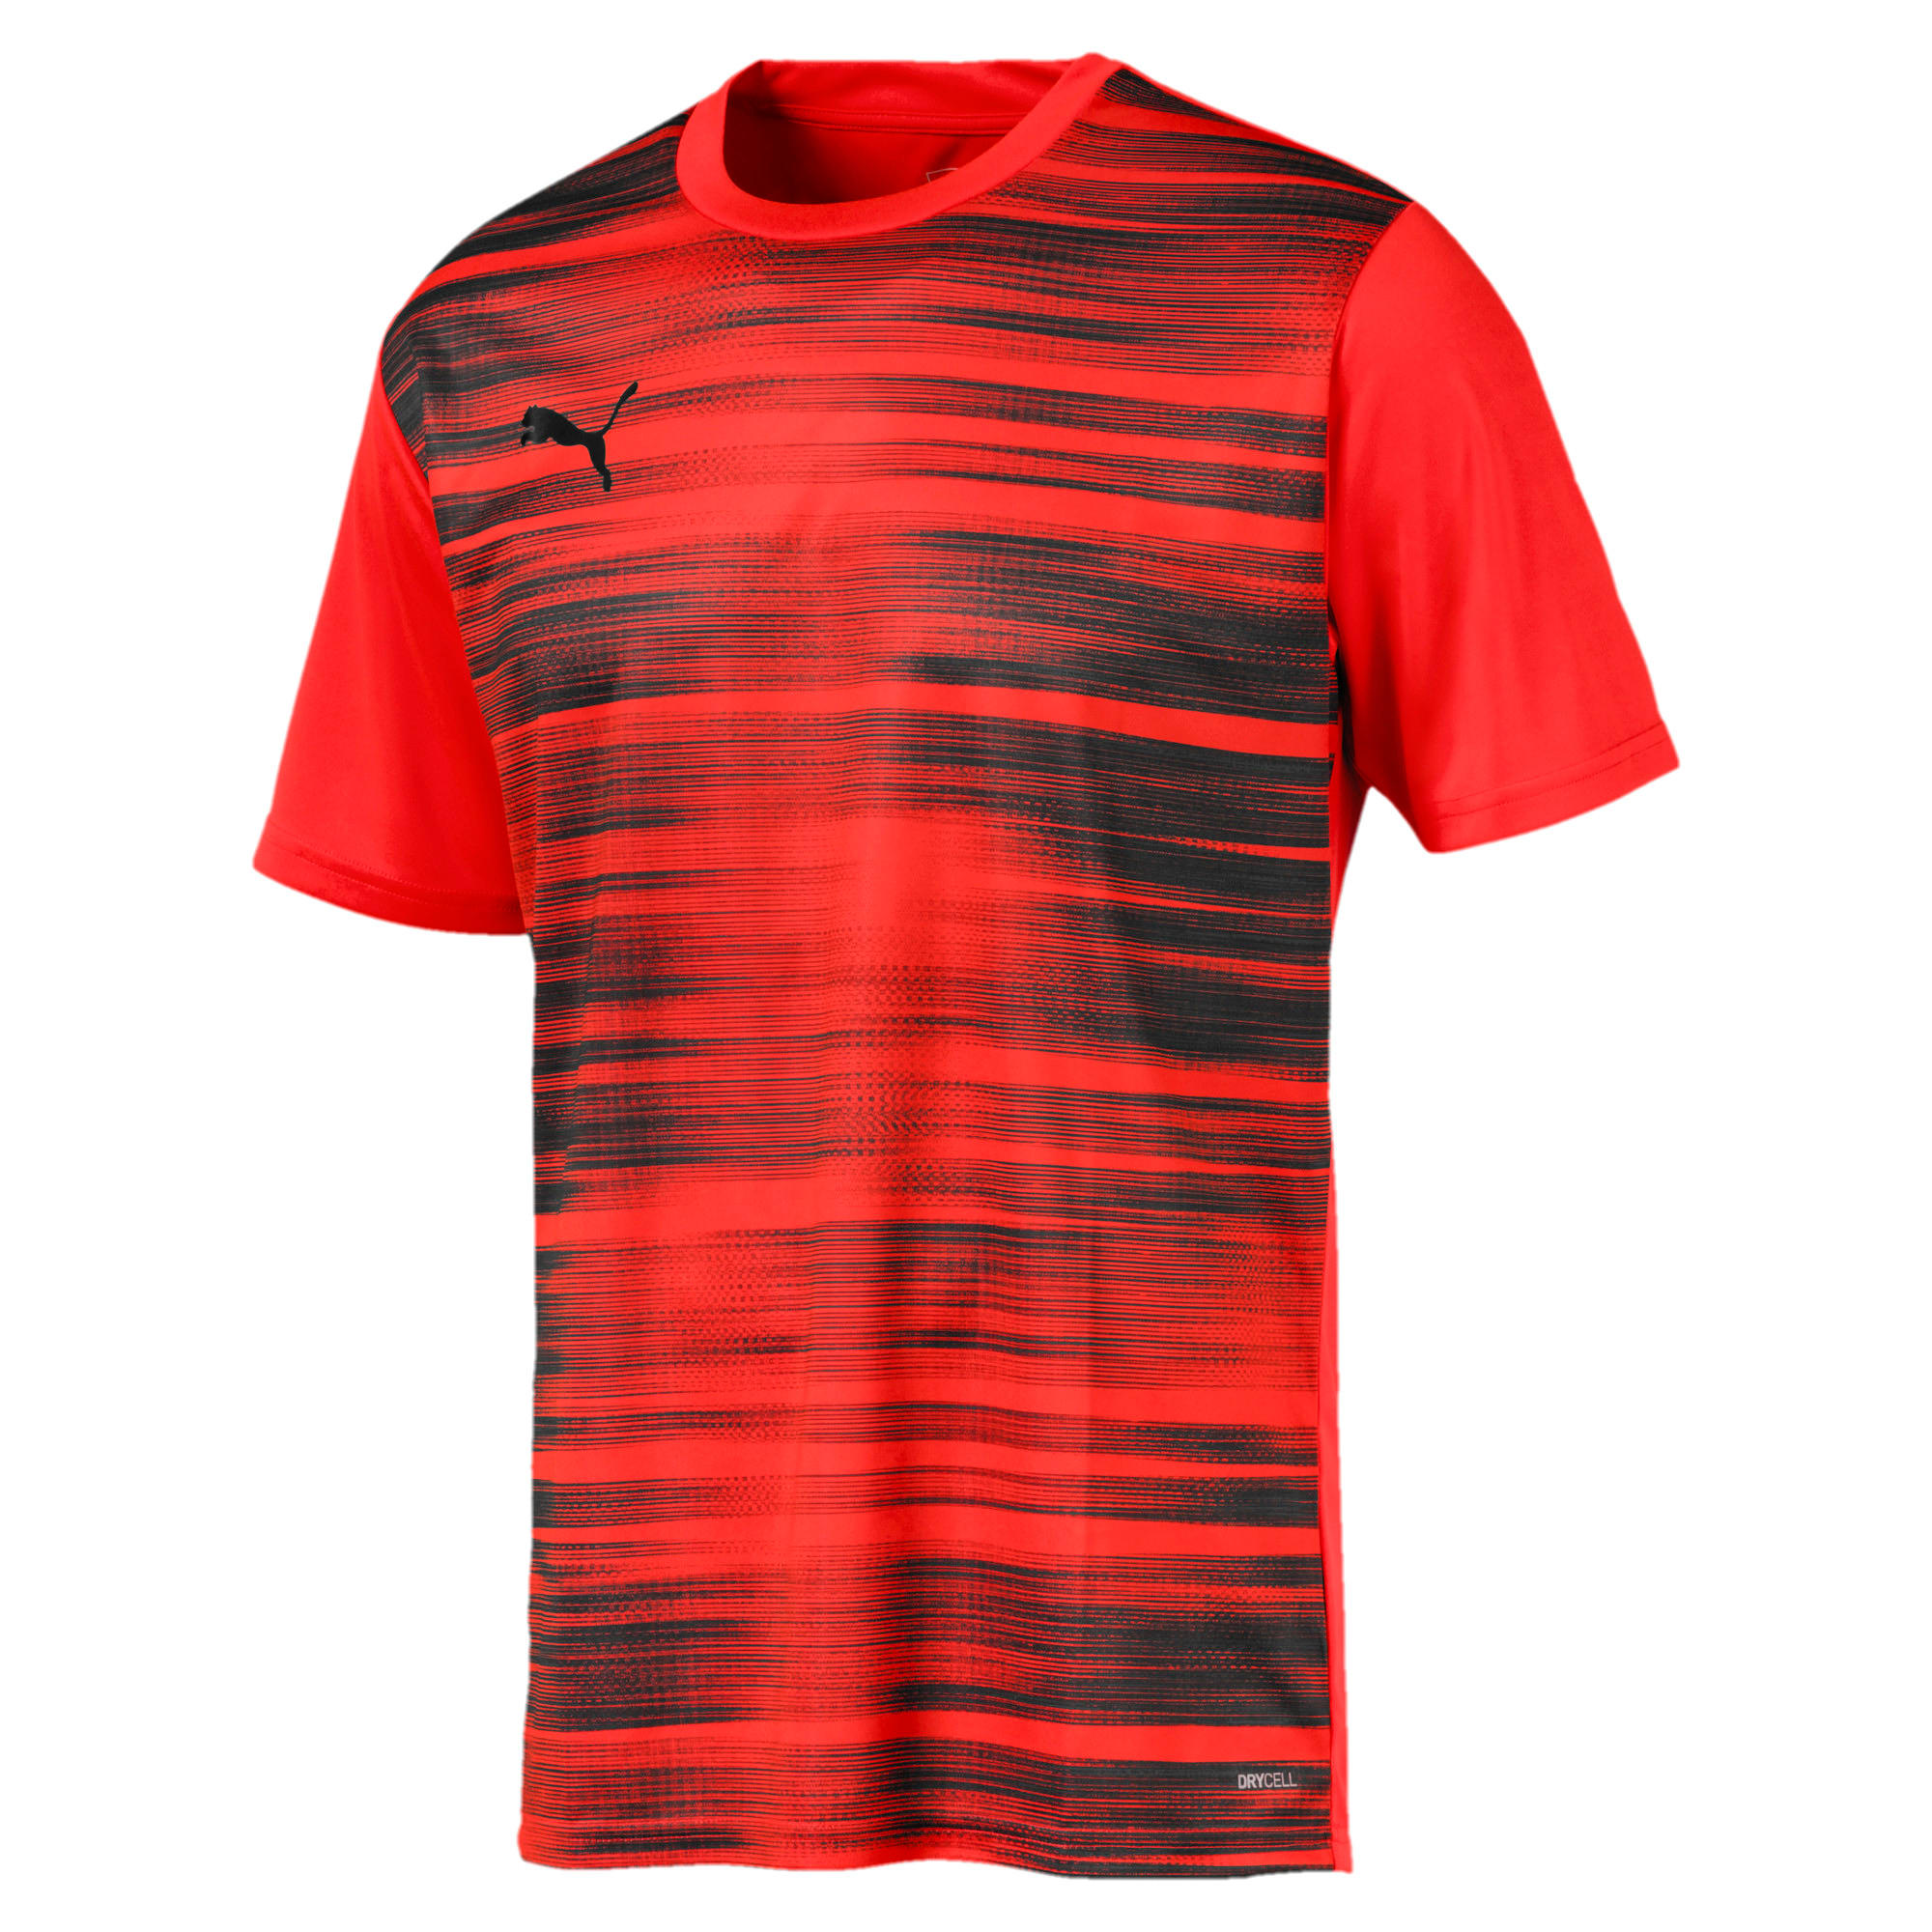 Core Graphic Men's Shirt, Nrgy Red-Puma Black, large